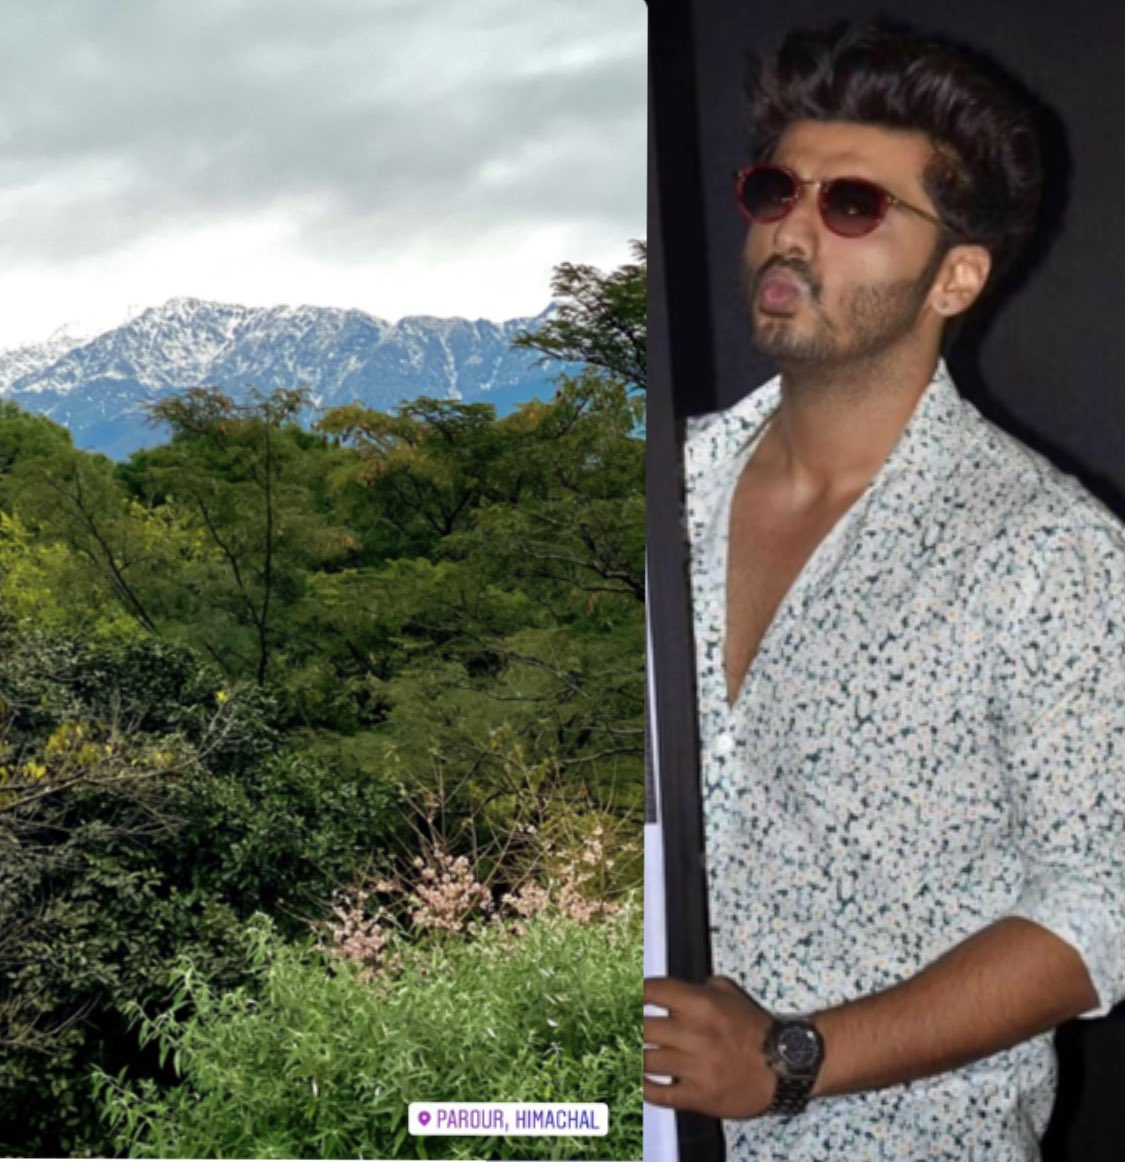 GM☀️ @arjunk26 am too fascinated by the scenic views from #dharamshala #BhootPolice  🌈🌟 So beautiful 😍  Ur lucky to shoot there.. except that temperature experiences i can understand 😉 Visualizing u n scenery together😛 Have a great day at shoot 💯 give ur best shots 👍🏽☺️